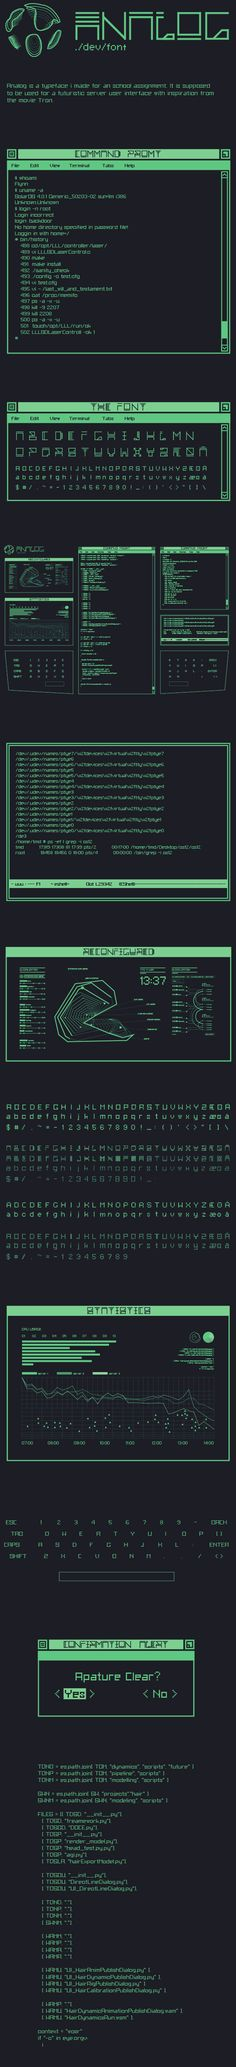 Analog Font by Jonatan Austigard, via Behance